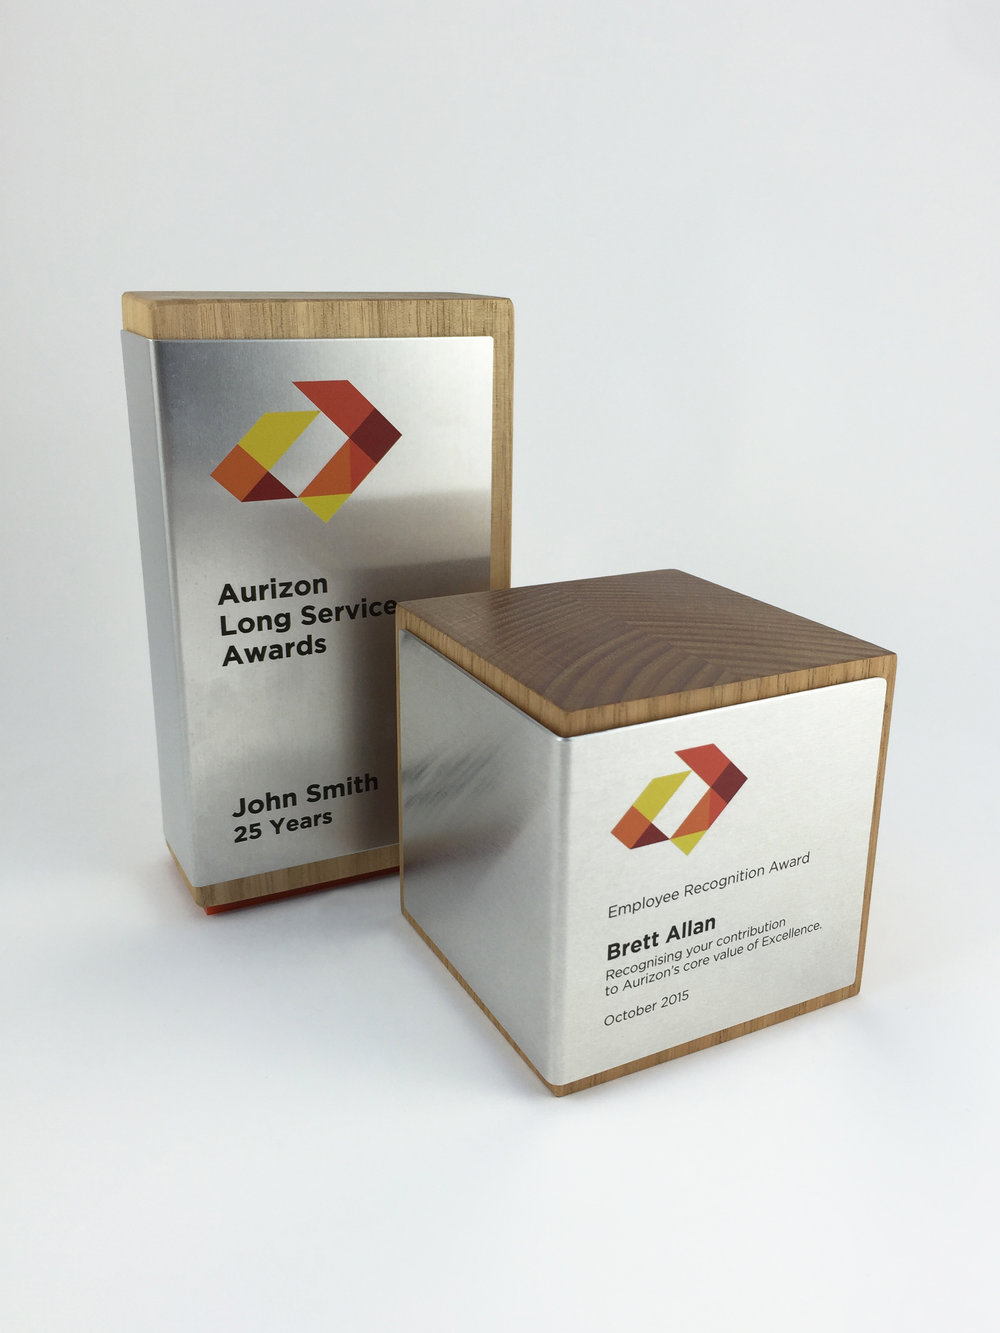 aurizon-recognition-awards-timber-cube-metal-trophy-02.jpg